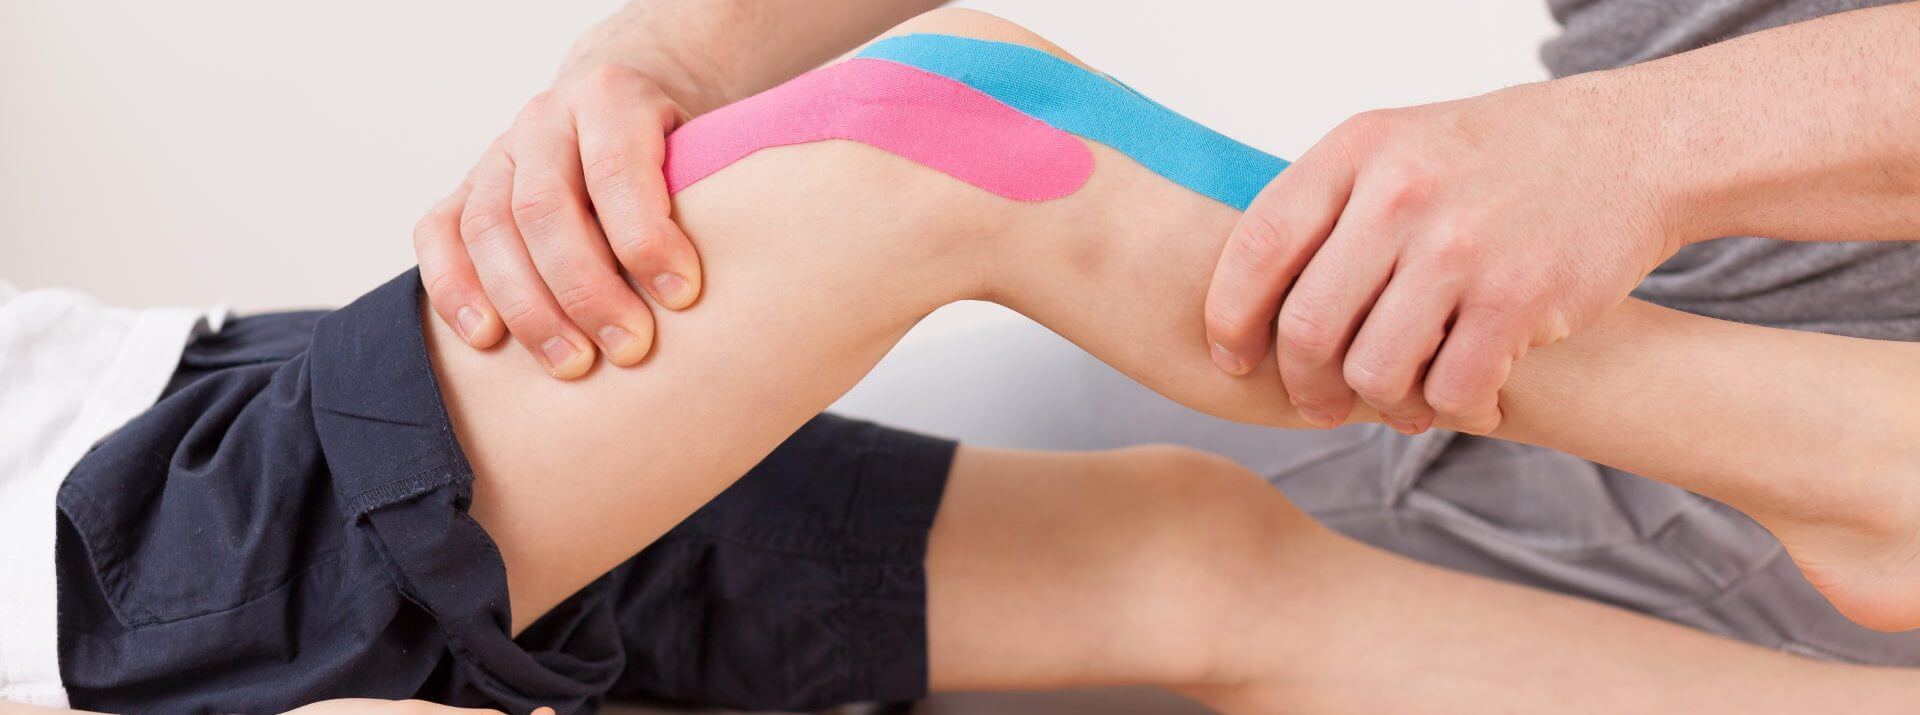 Kinesiology tape is now widely used in injuries and muscle weakness.